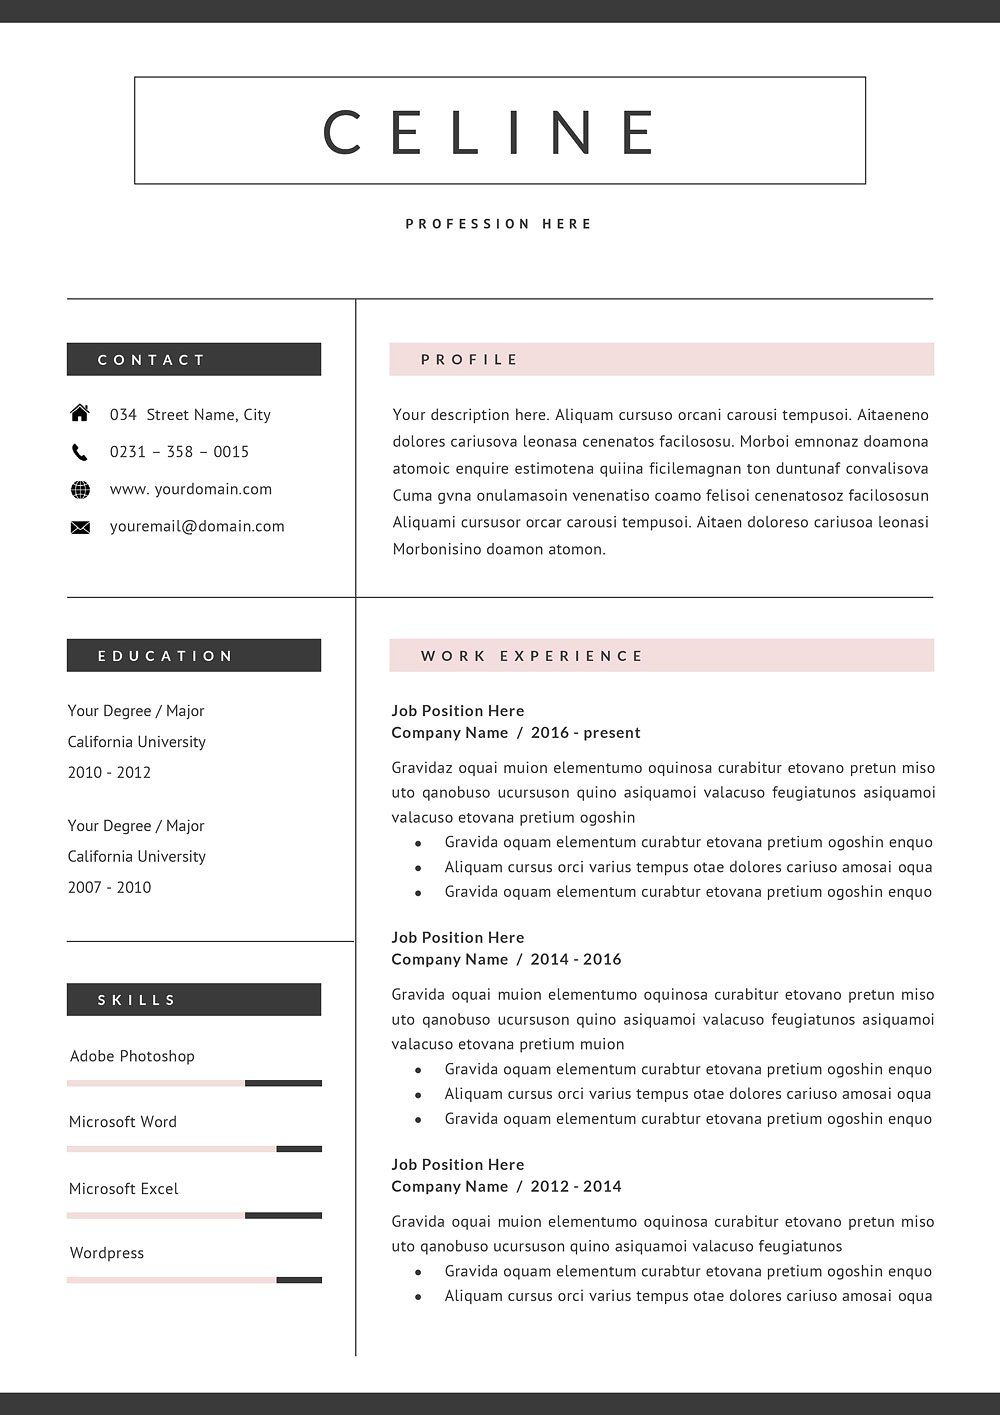 Pin by voguish venom. on imgs +more Cv template, Resume